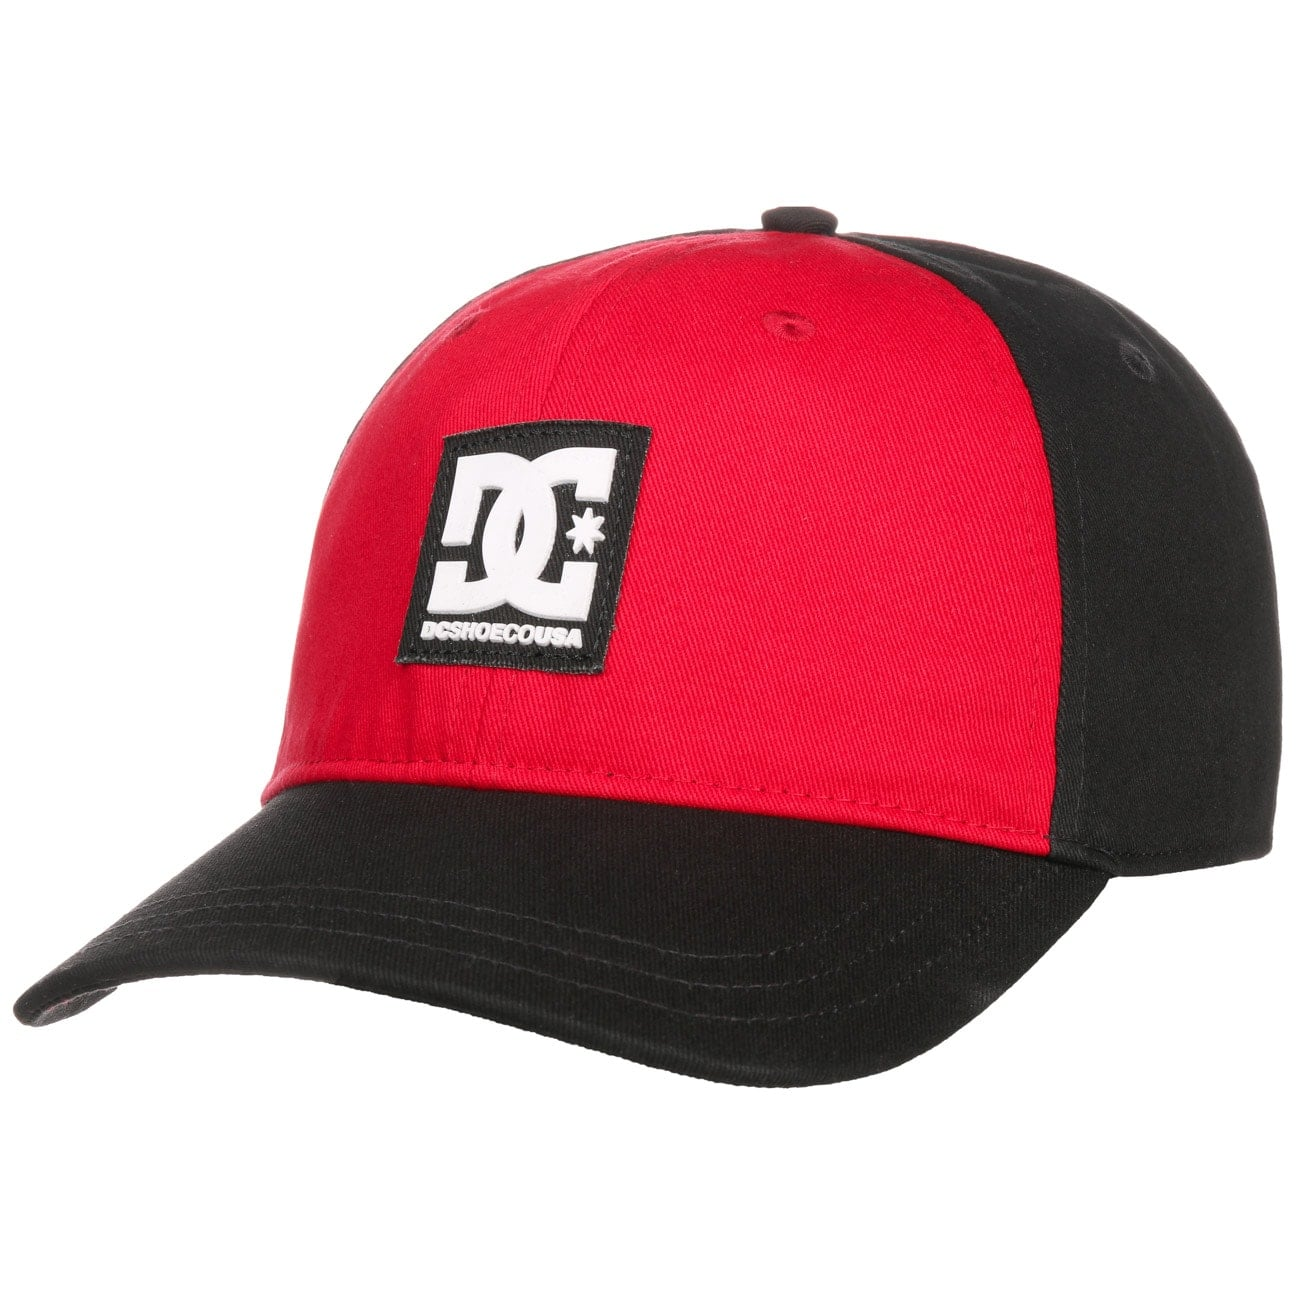 Gorra Snapback Spinner by DC Shoes Co  Curved Brim Cap